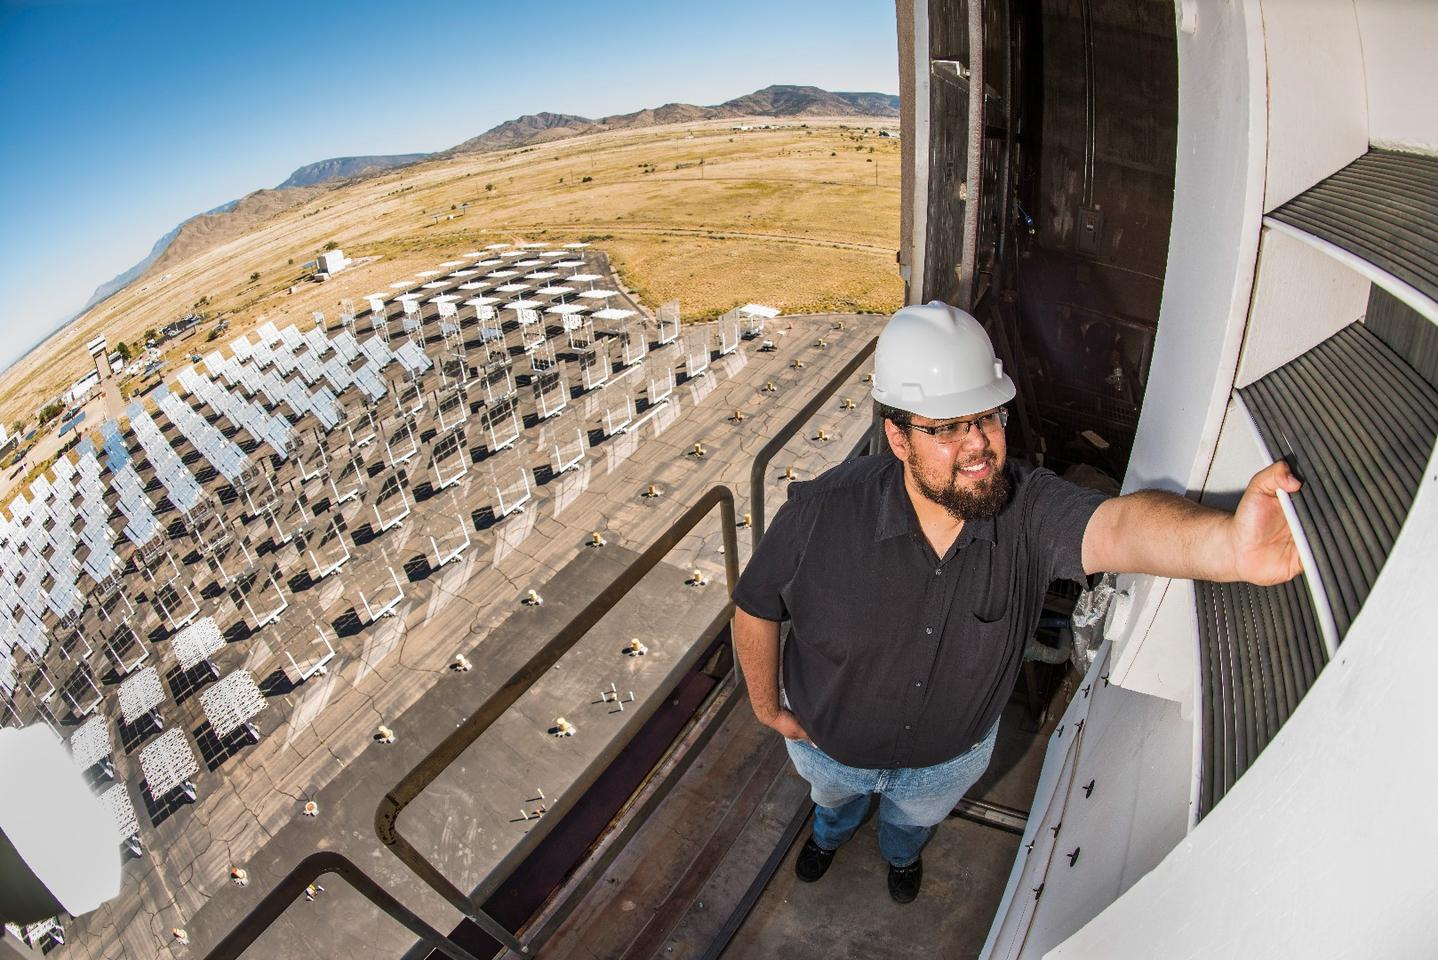 Engineers fromSandia National Laboratories have developed a new type of receiver for concentrating solar power plants, which should improve the sunlight capture efficiency of smaller facilities